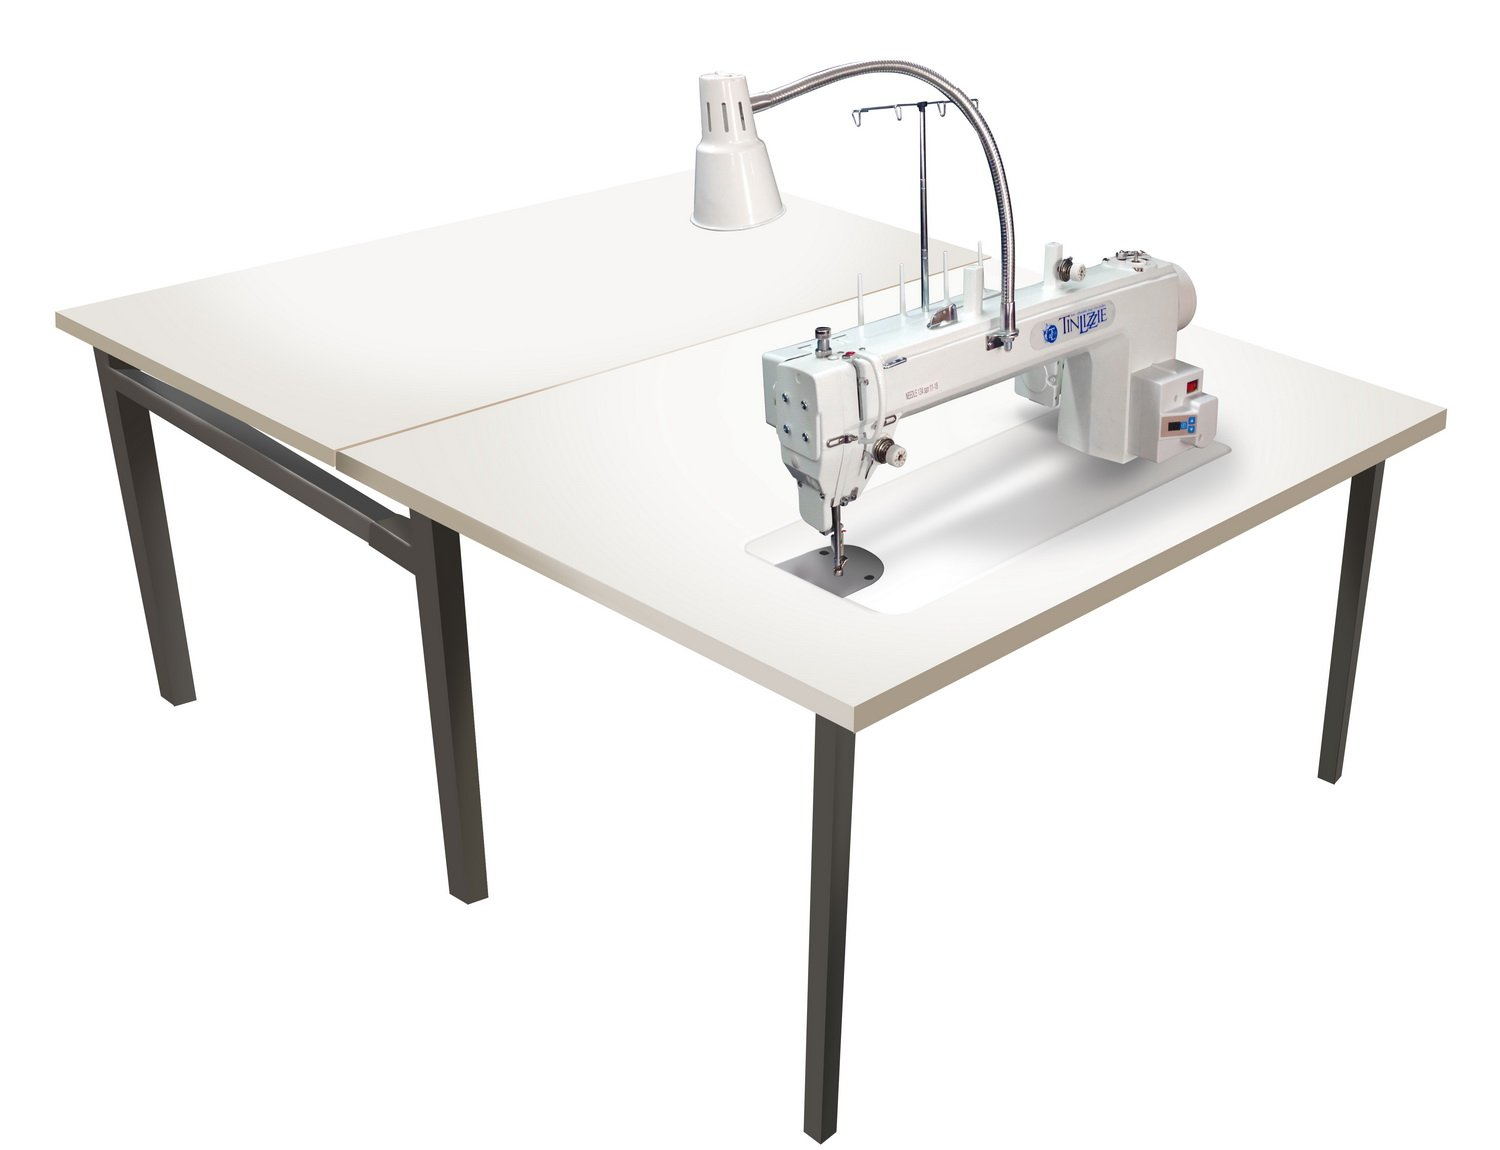 quiltsewclever inspira arm automated quilting quilt pro sale ii viking us husqvarna extra ae iquilt for accessories long en quilter machines frame used